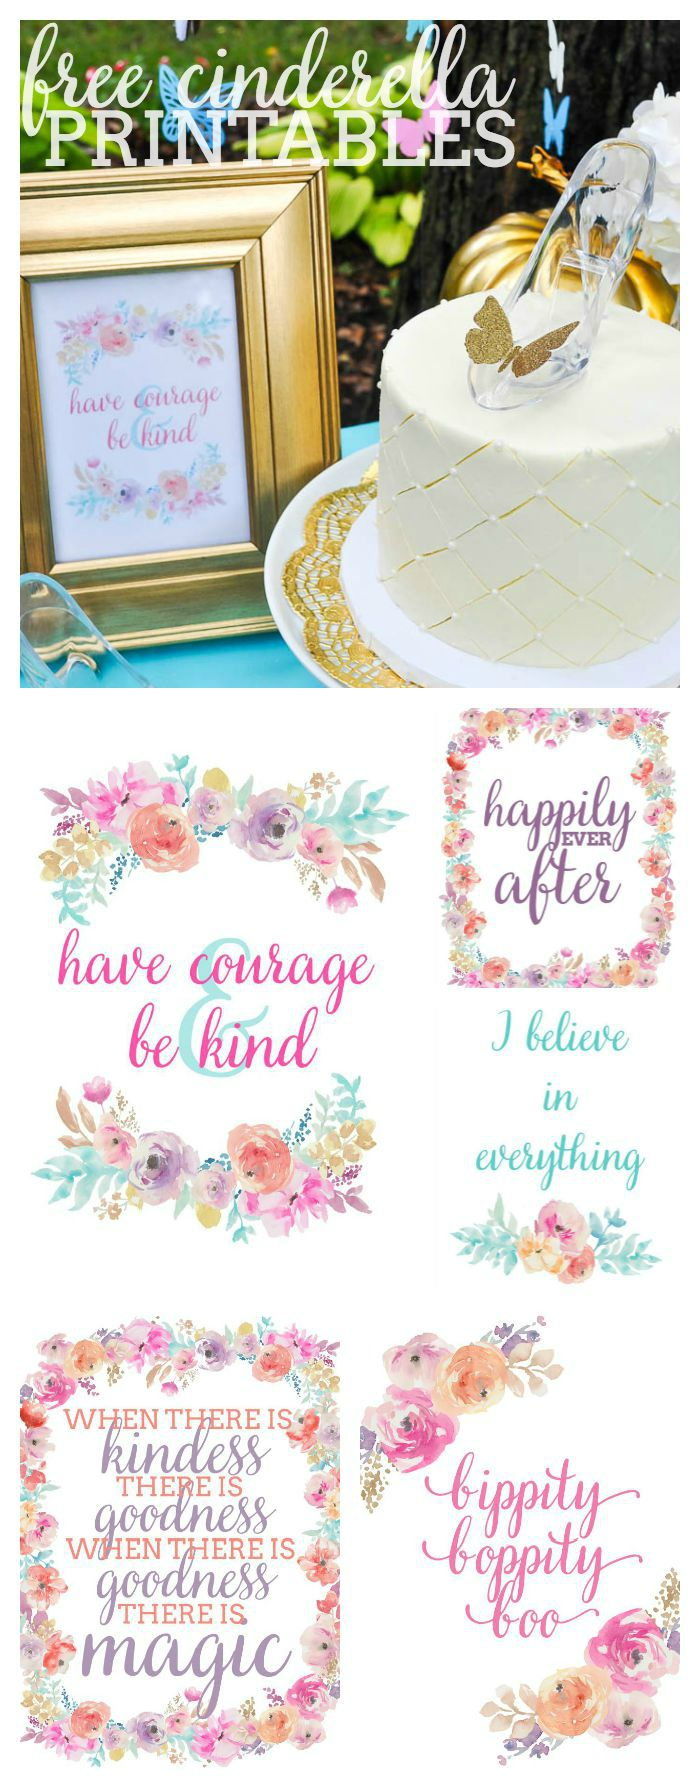 Free Cinderella Printables - 5 corresponding designs with quotes from the New Cinderella Movie that are perfect for both home decor and party decor! | The Love Nerds